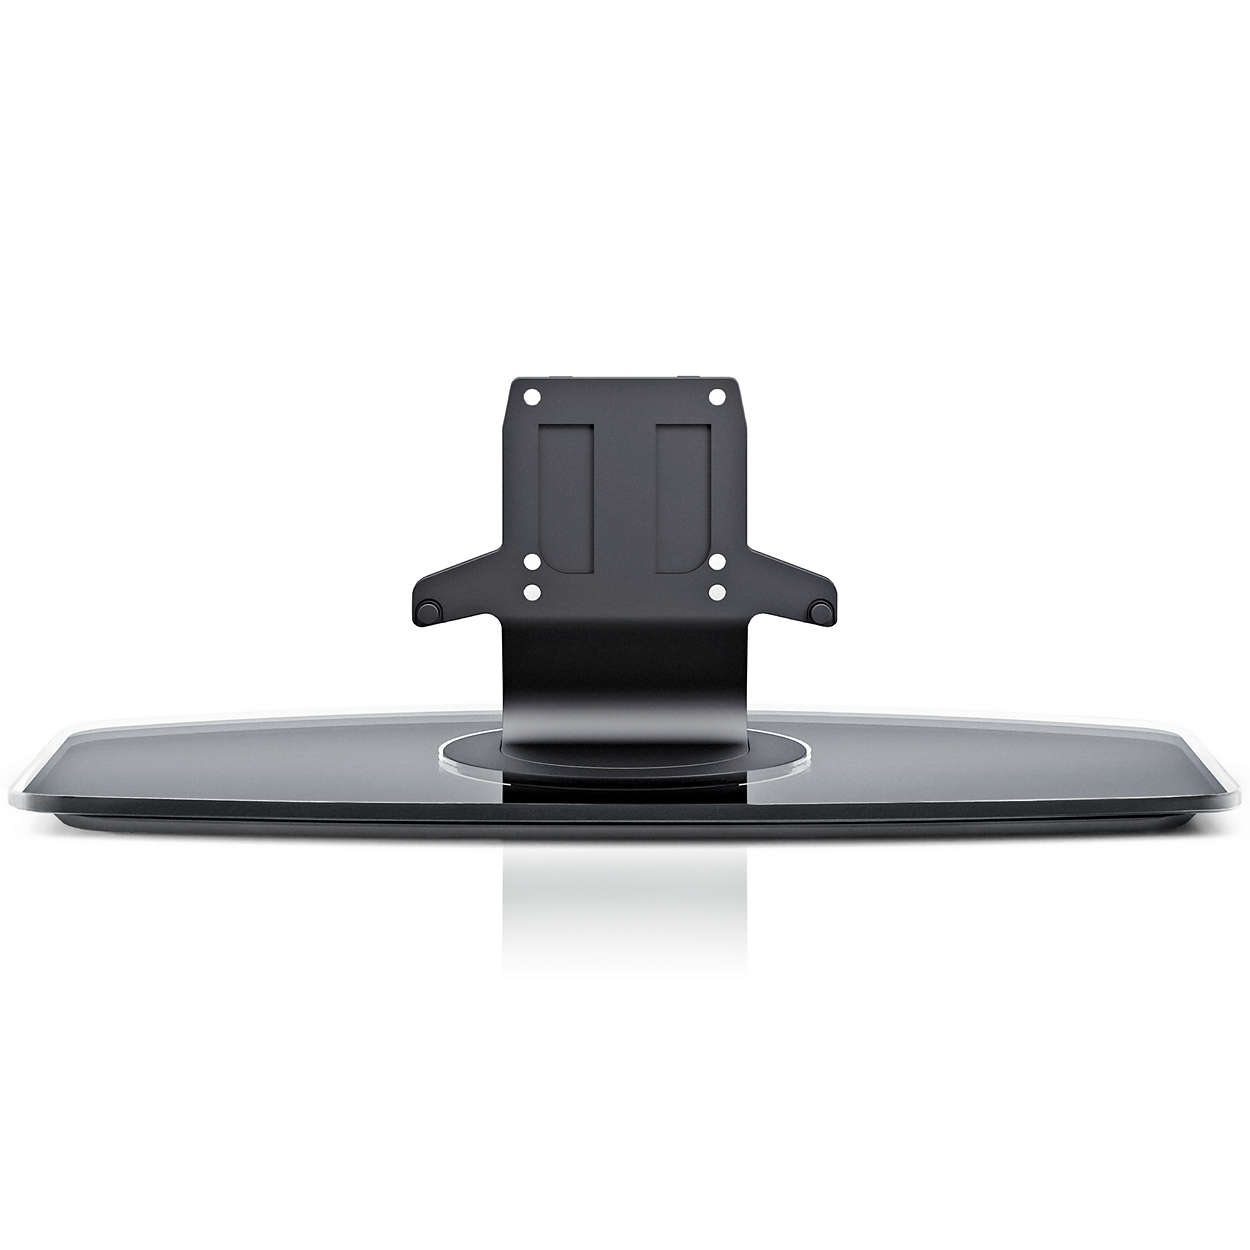 Cinema 21 9 support de table tv st569954 10 philips for Table televiseur